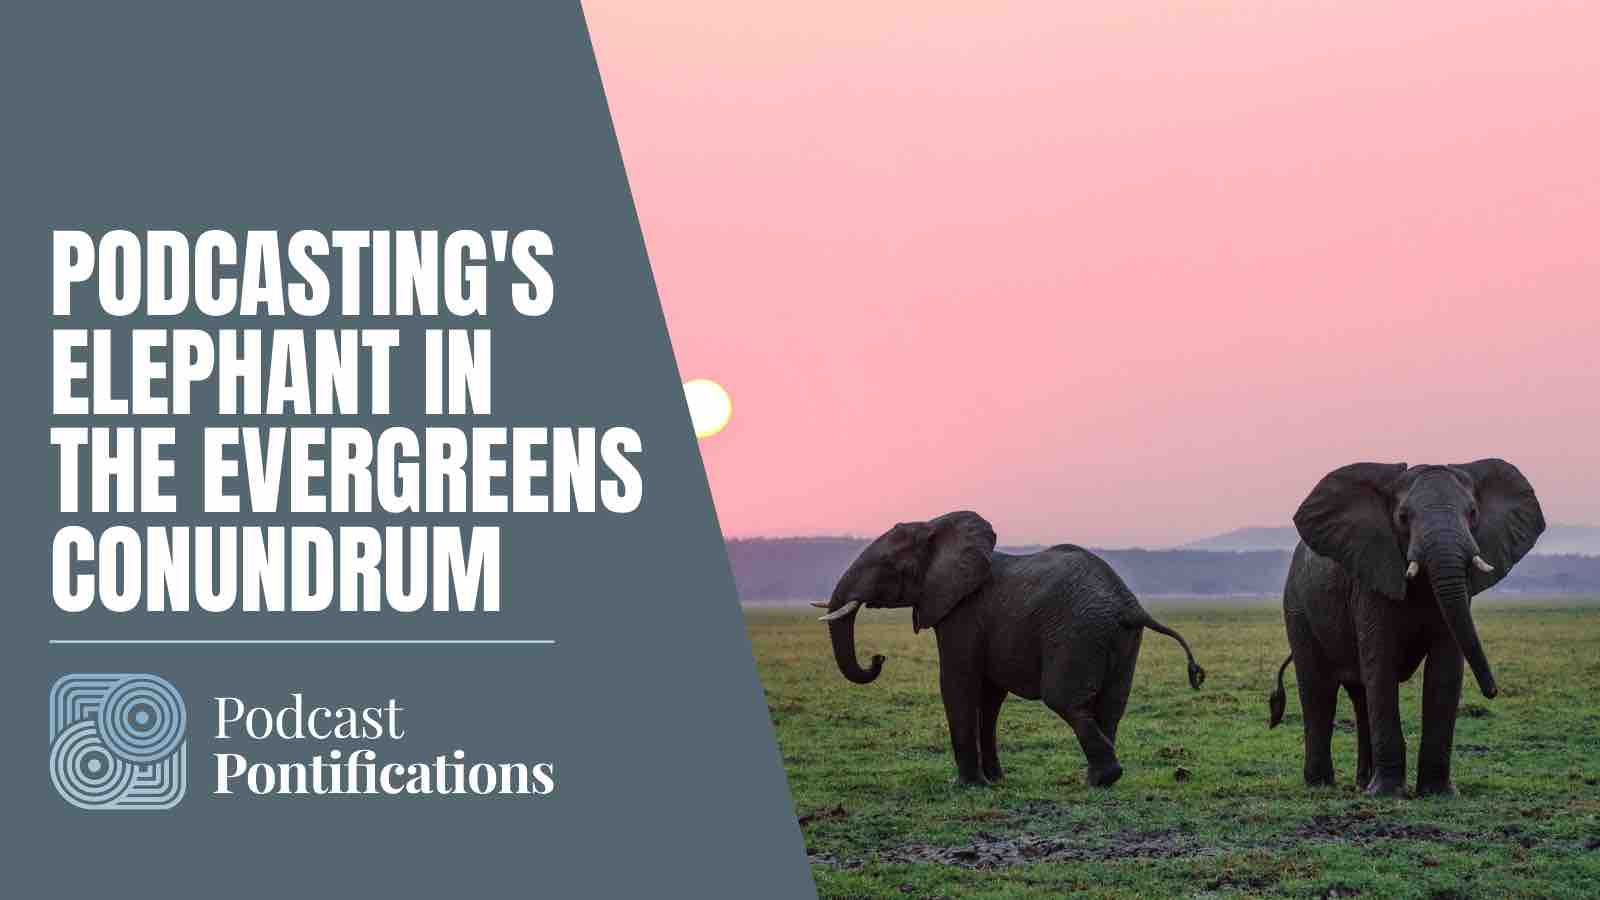 Podcasting's Elephant In The Evergreens Conundrum